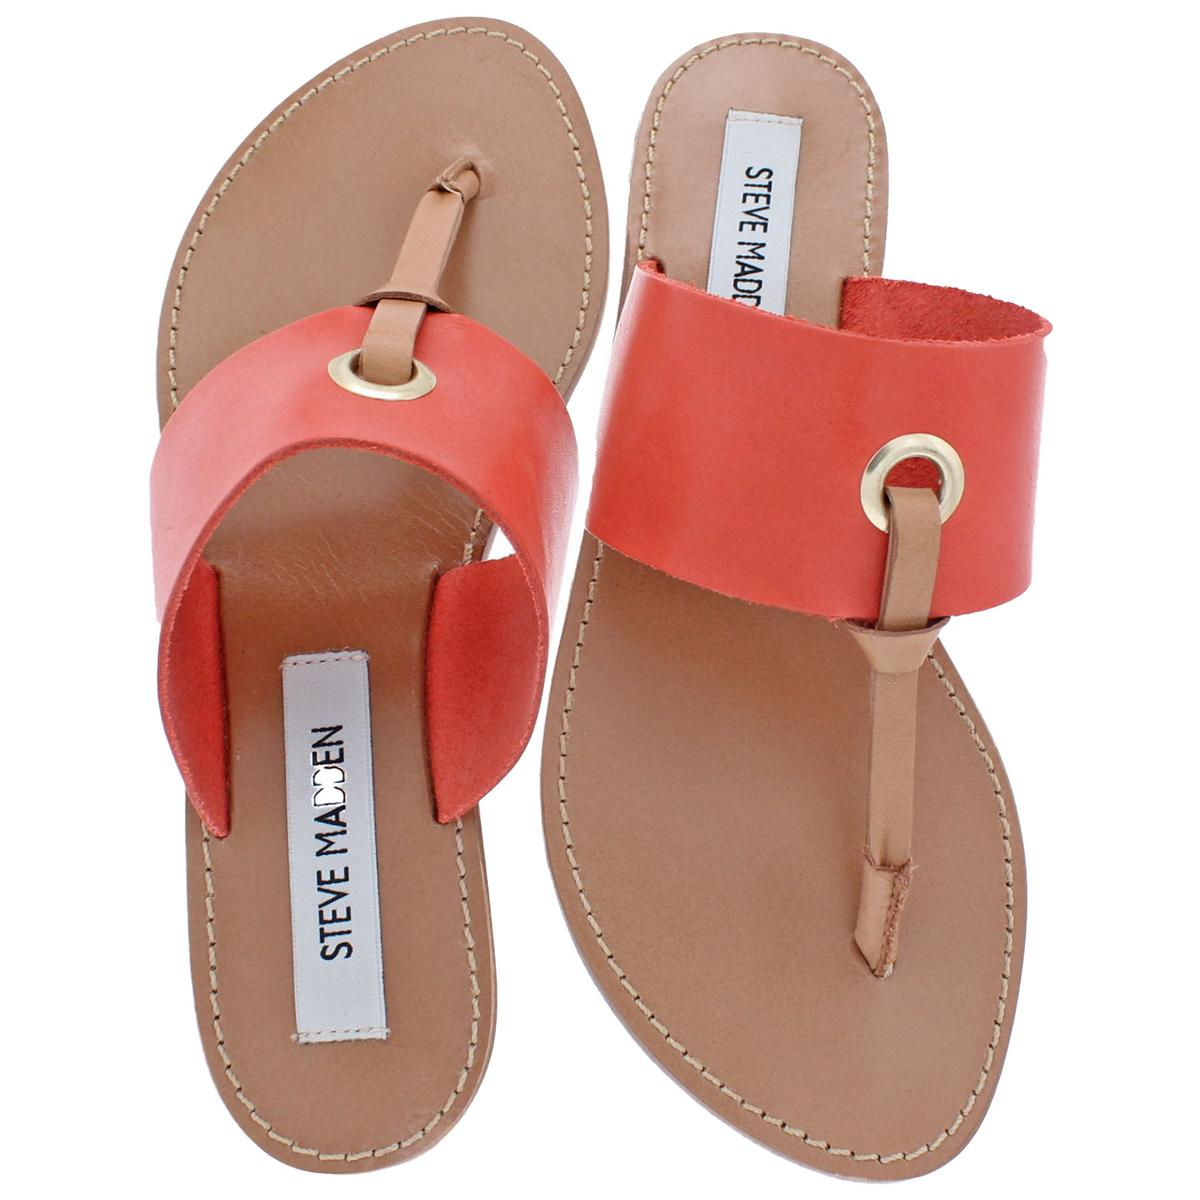 Steve-Madden-Women-039-s-Ringer-Leather-Casual-Thong-Slide-Flat-Sandals-Shoes thumbnail 4